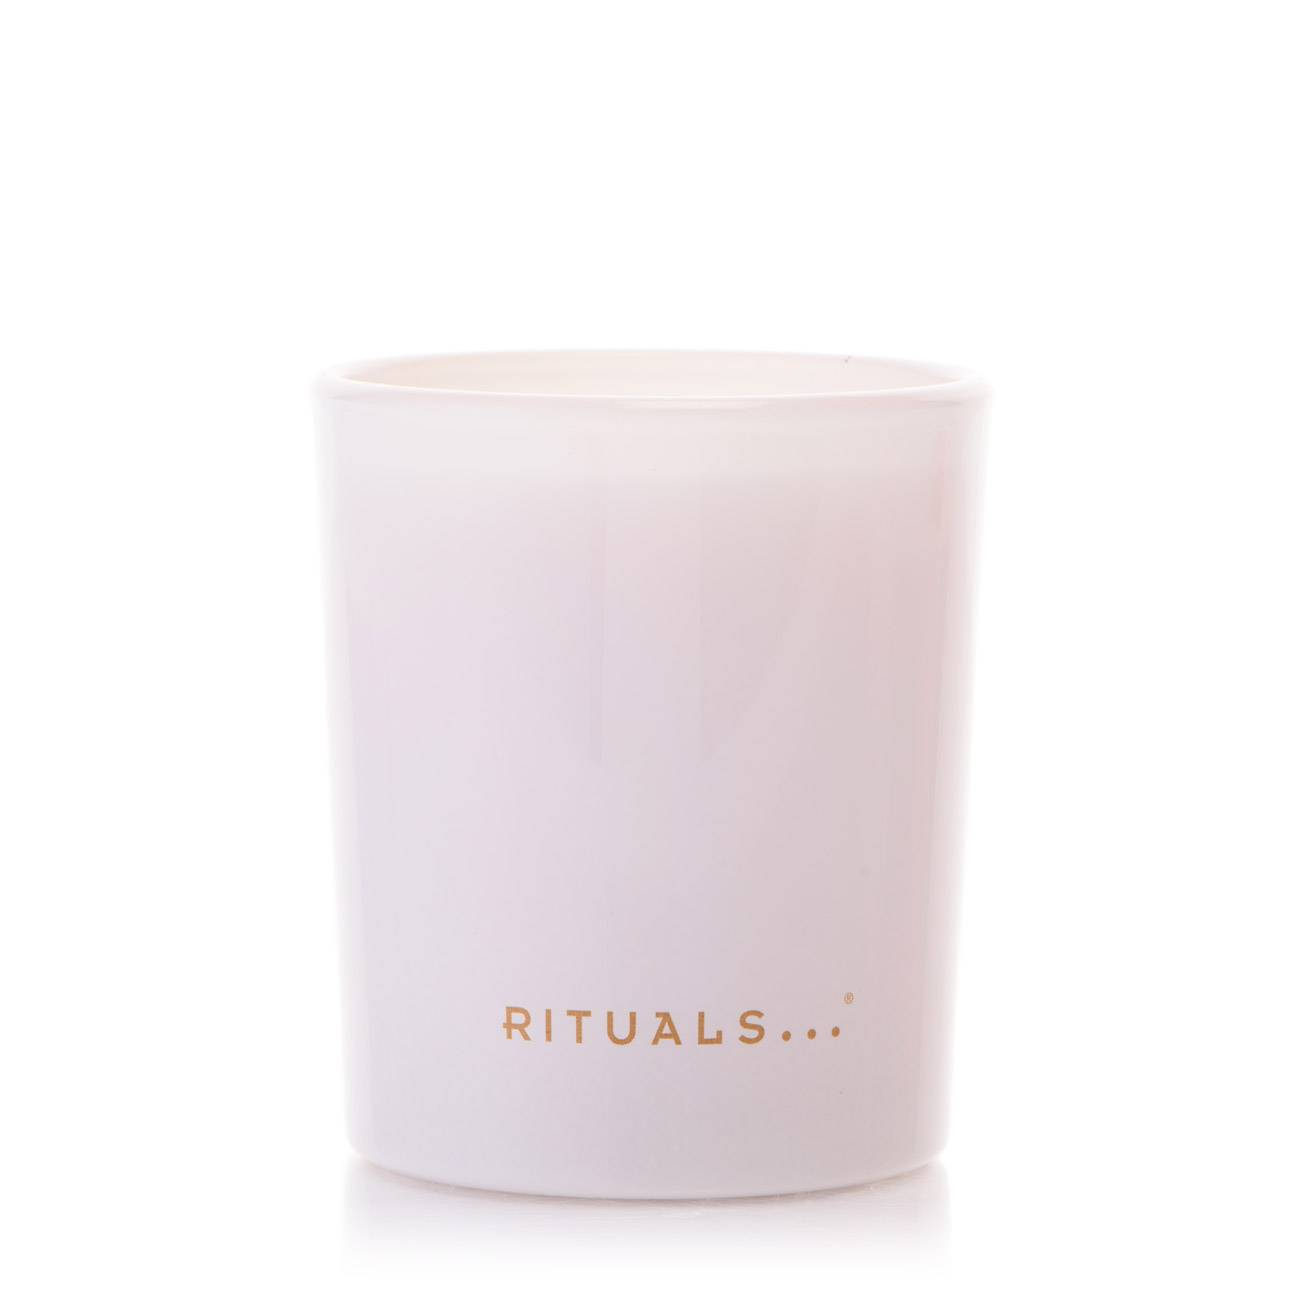 Sakura Scented Candle 290 Grame Rituals imagine 2021 bestvalue.eu